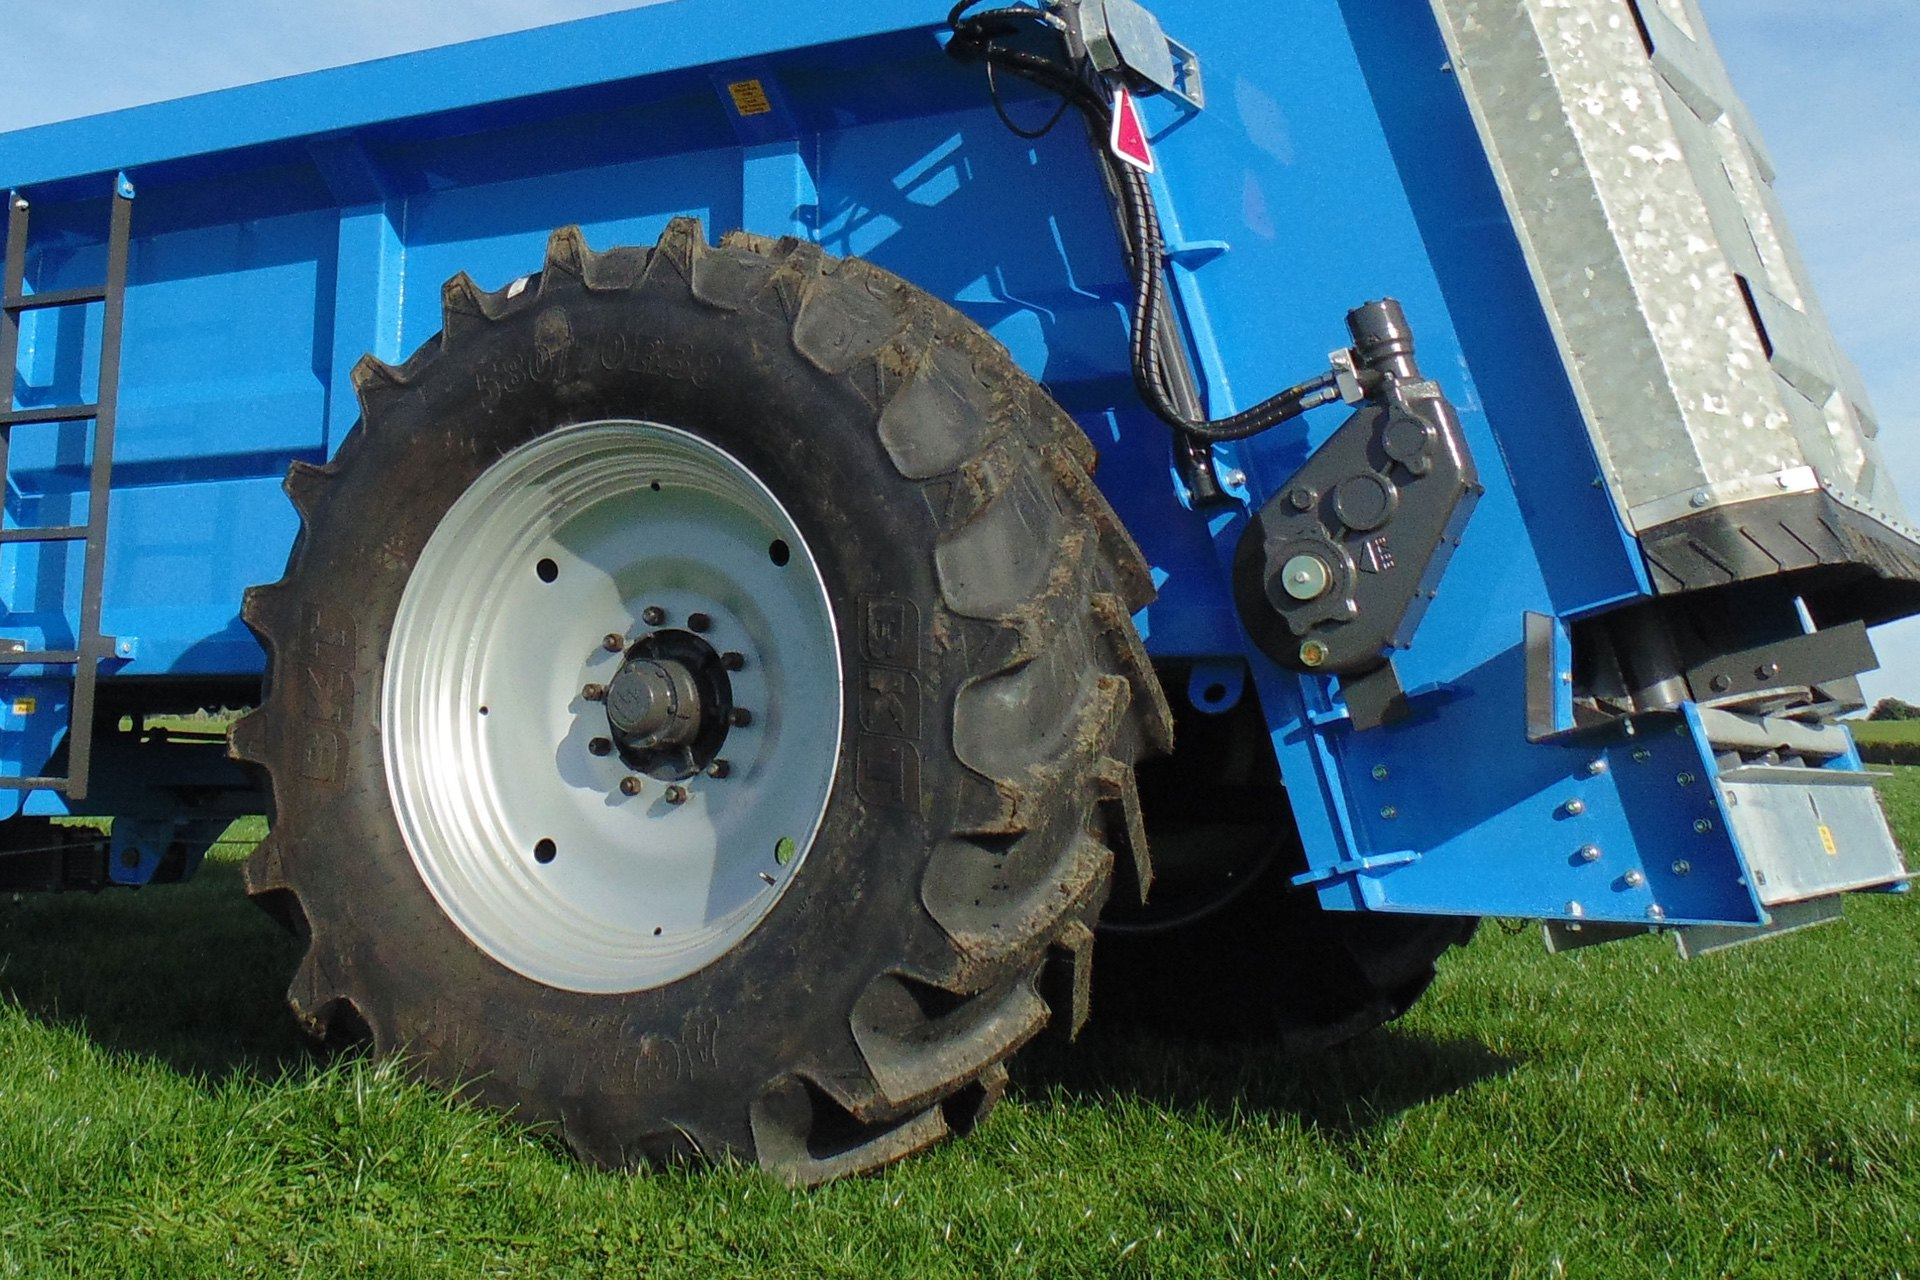 Large tyres reduce compaction and make the machine easier to pull